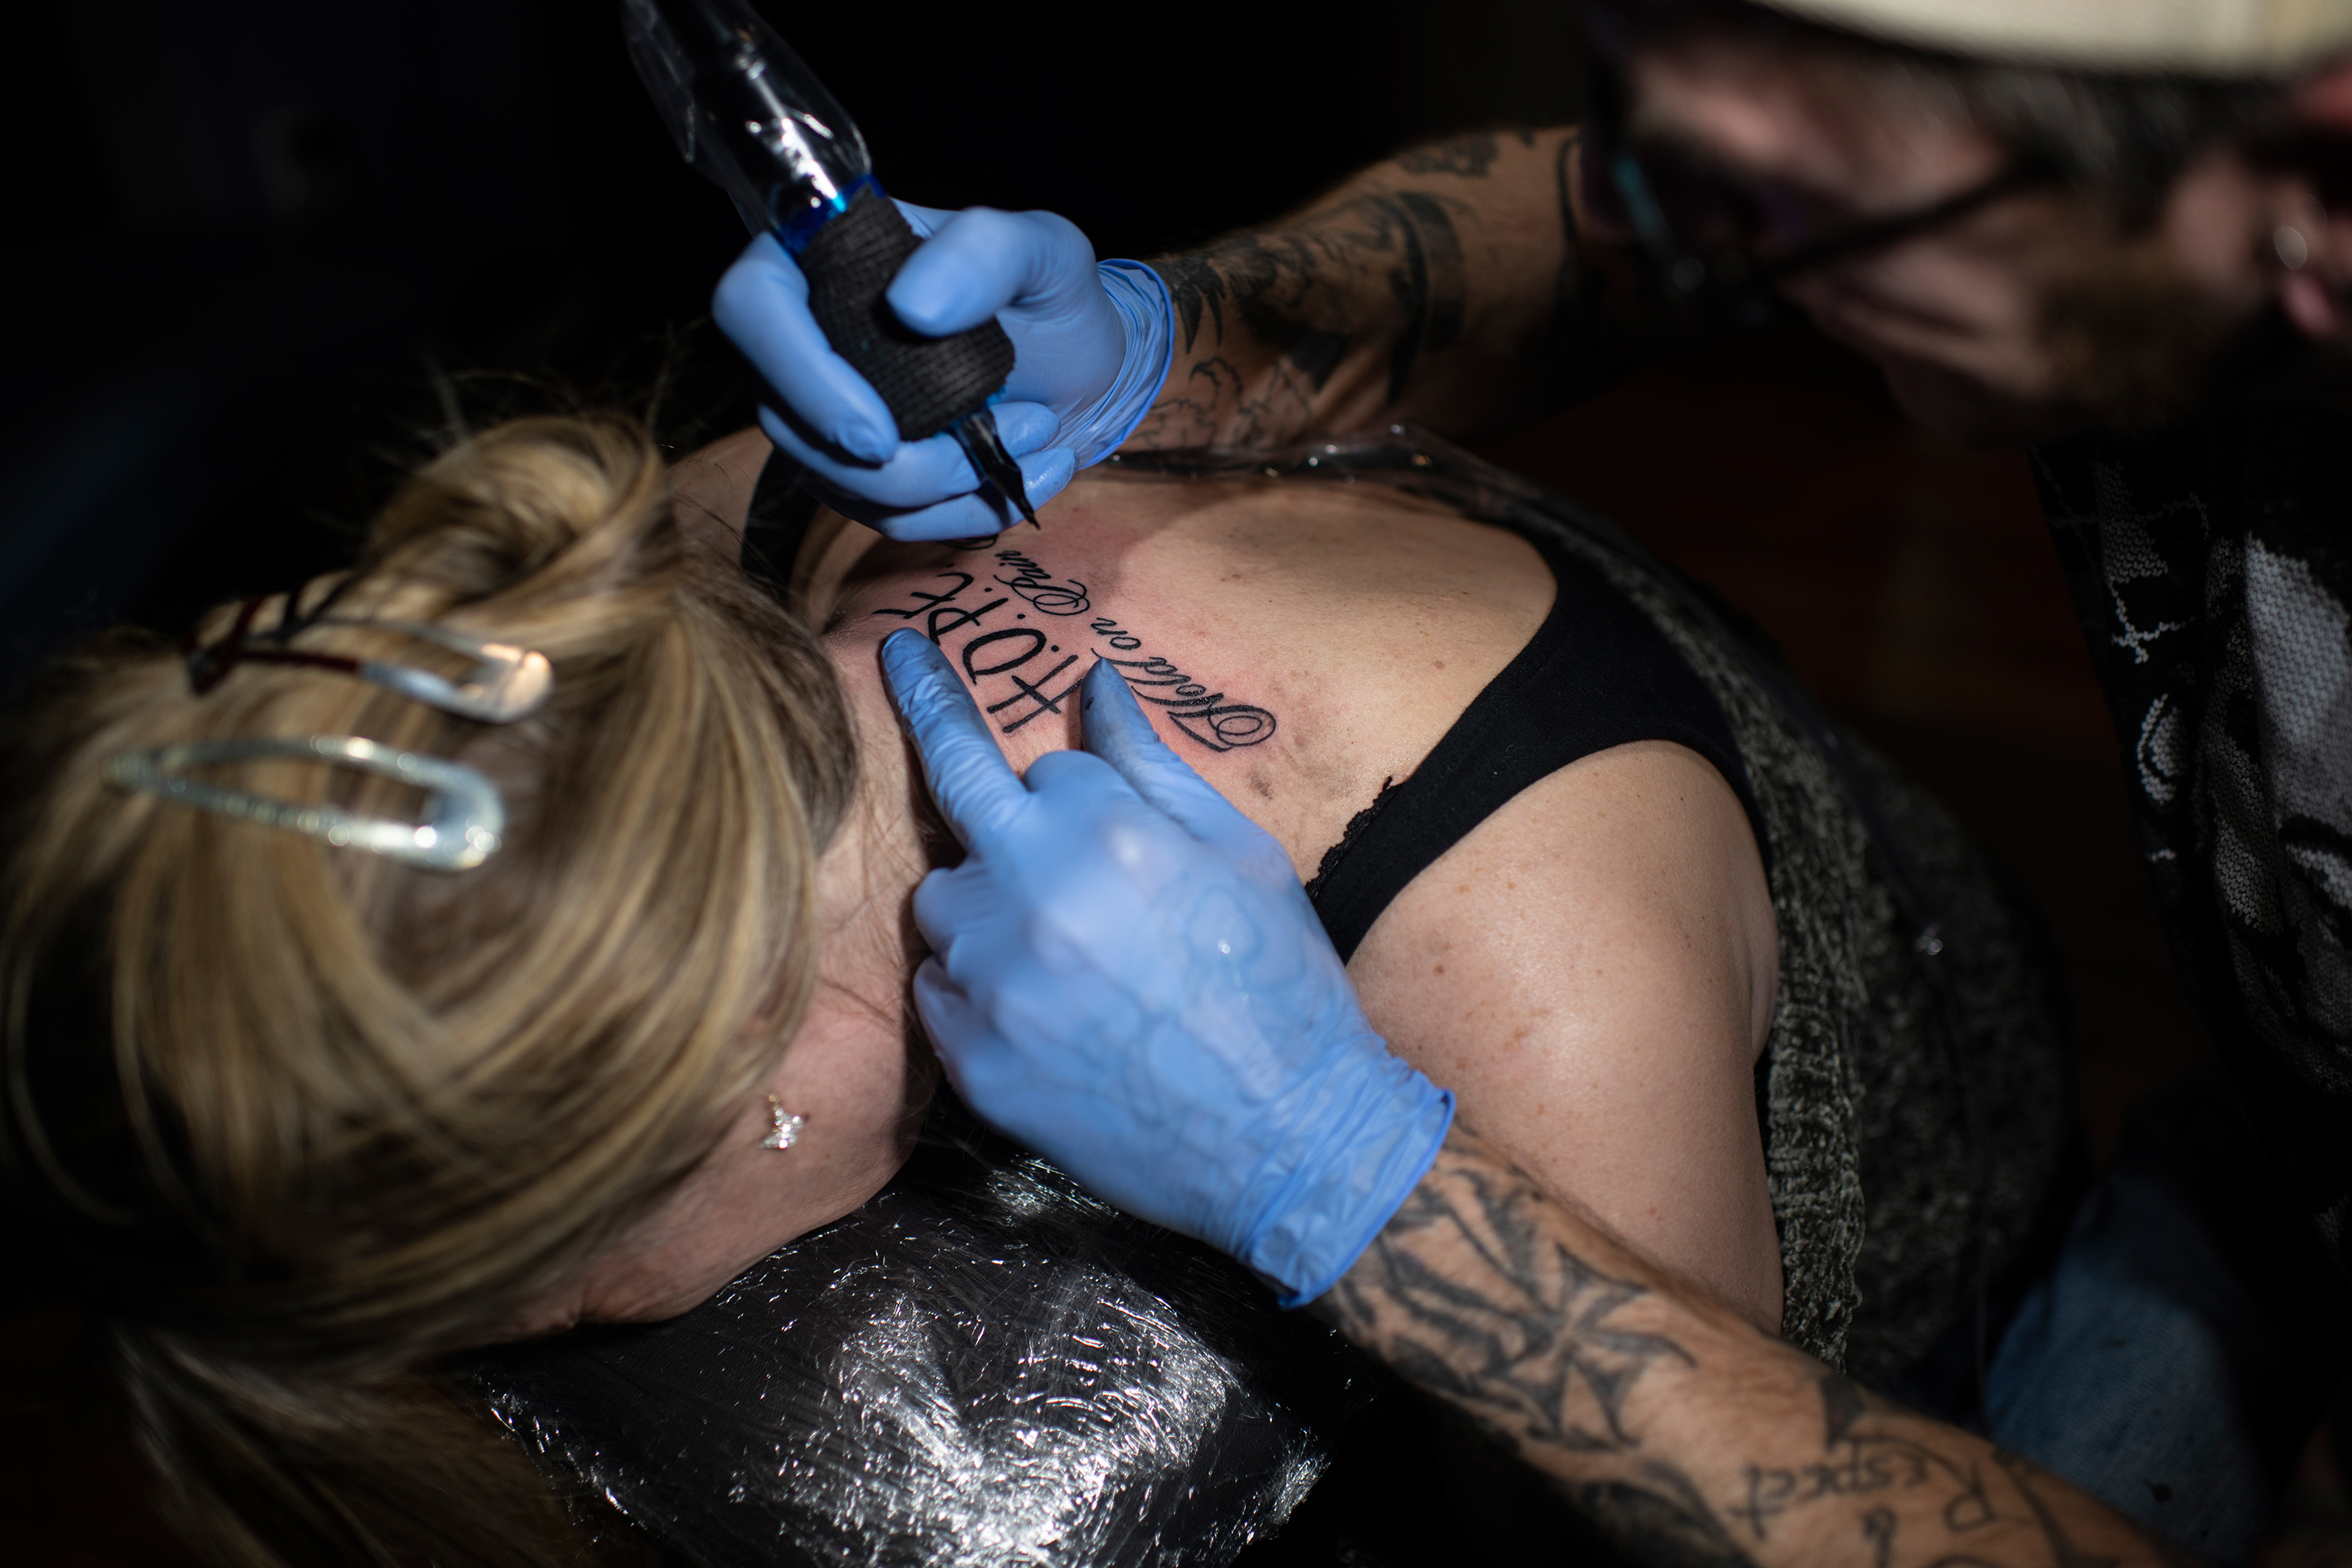 Knoblauch gets a tattoo in April to commemorate her freedom from traffickers